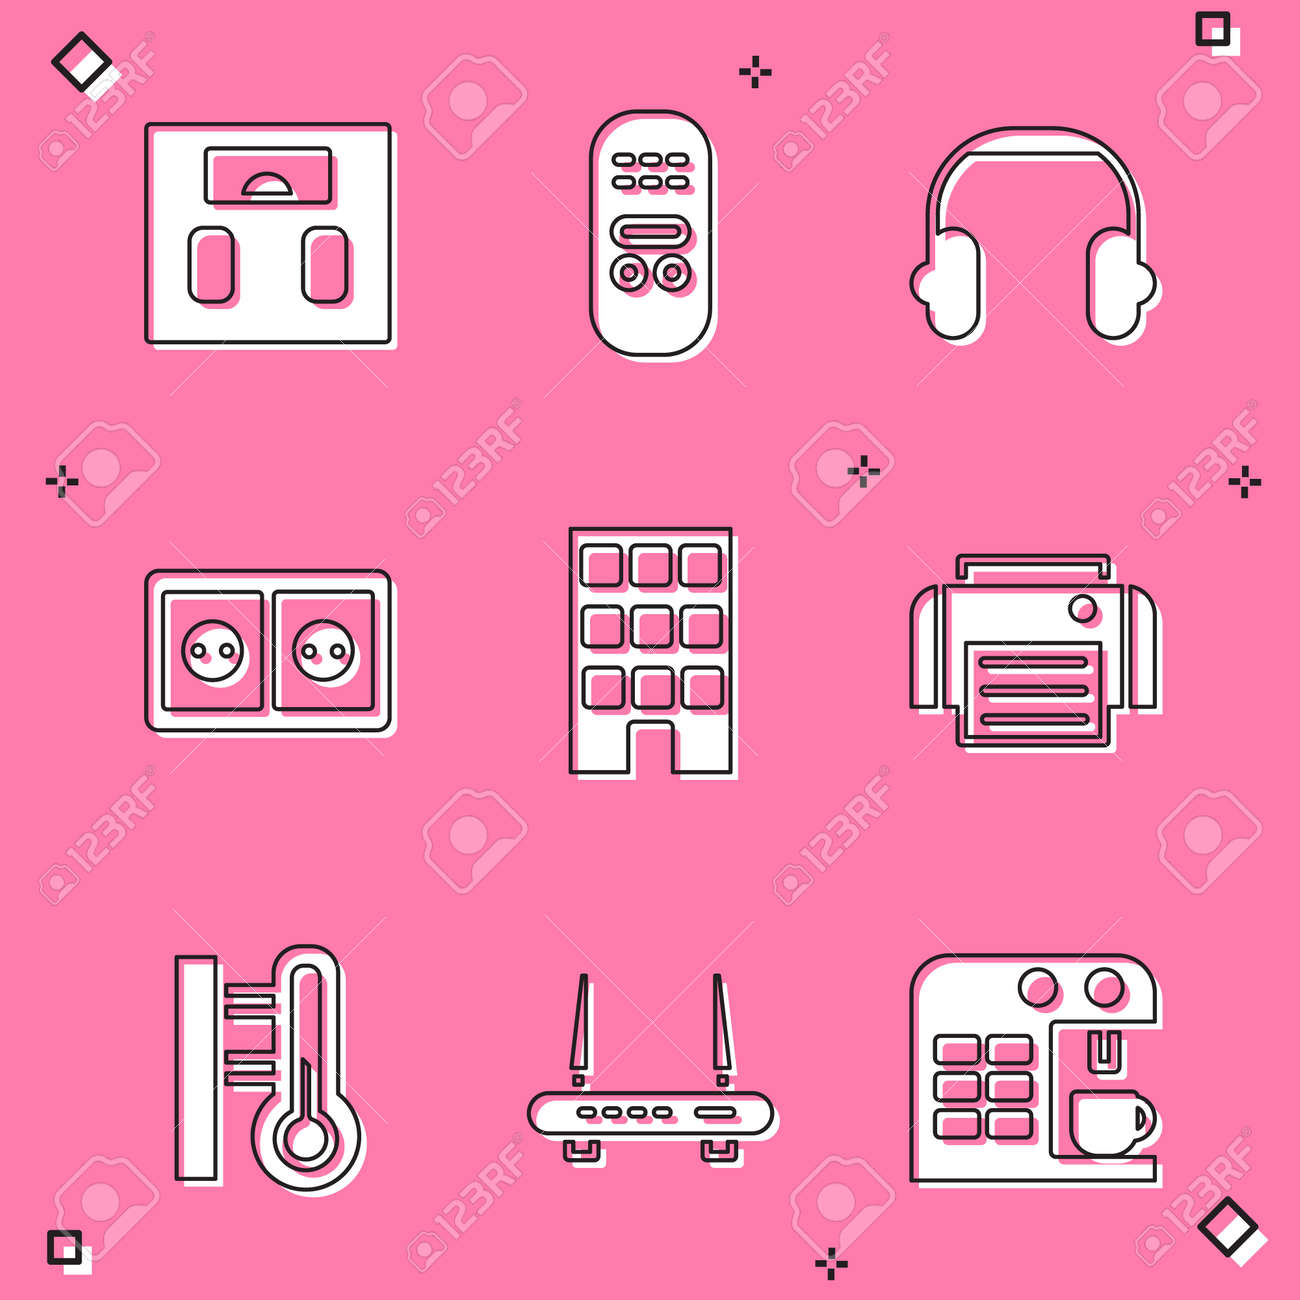 Set Bathroom scales, Remote control, Headphones, Electrical outlet, House, Printer, Meteorology thermometer and Router and wifi signal icon. Vector - 171781013